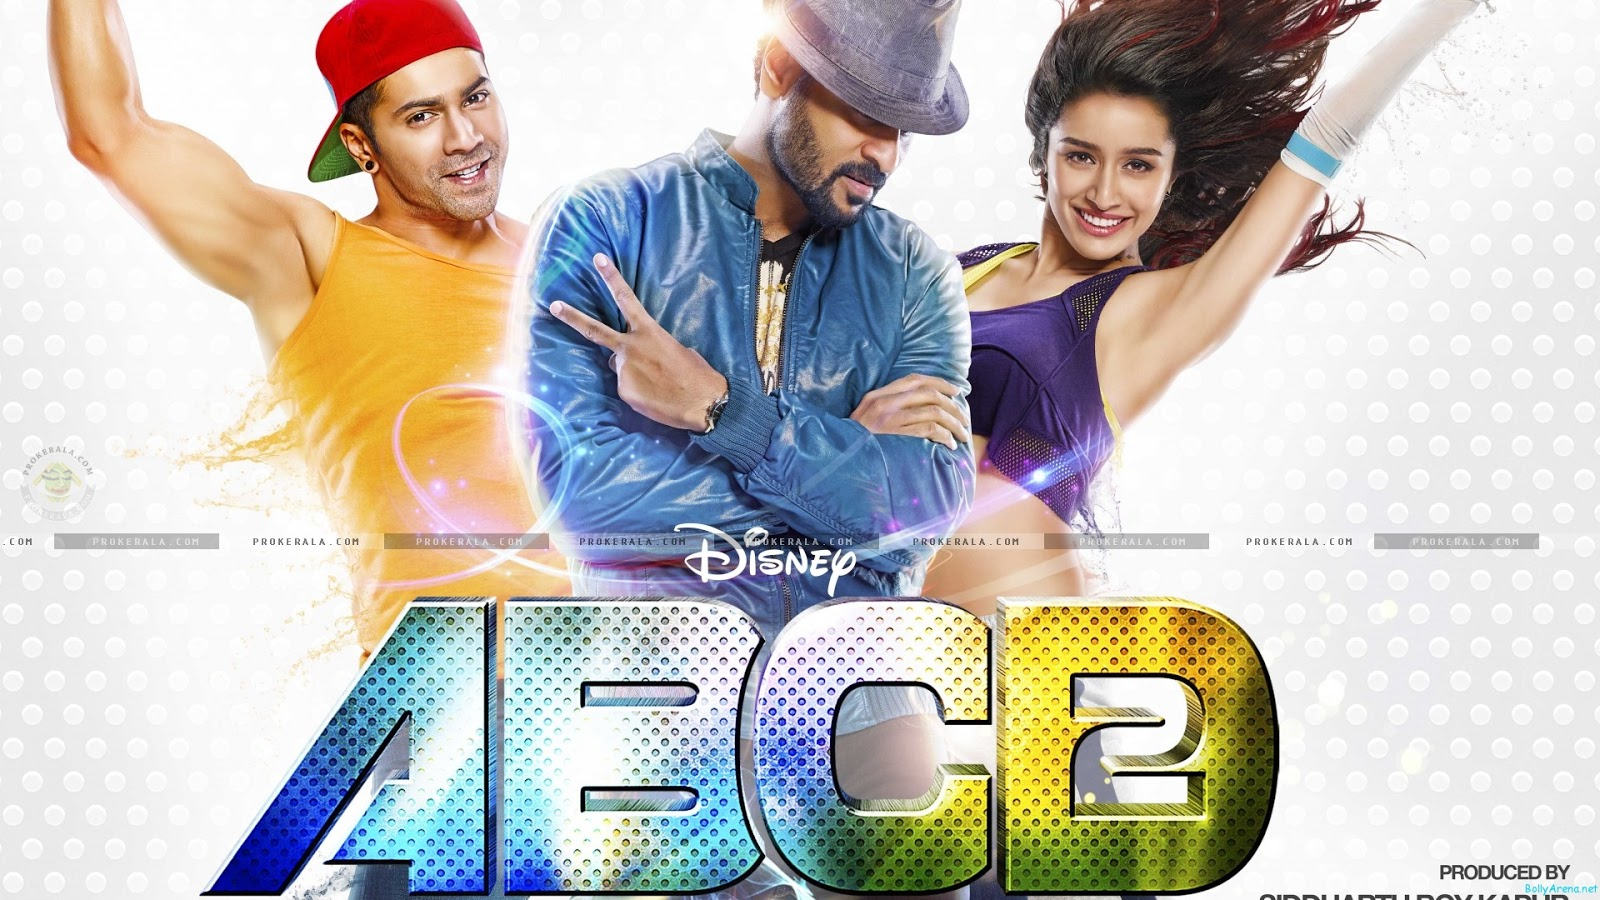 Abcd 2 Hd Movie Torrent Link